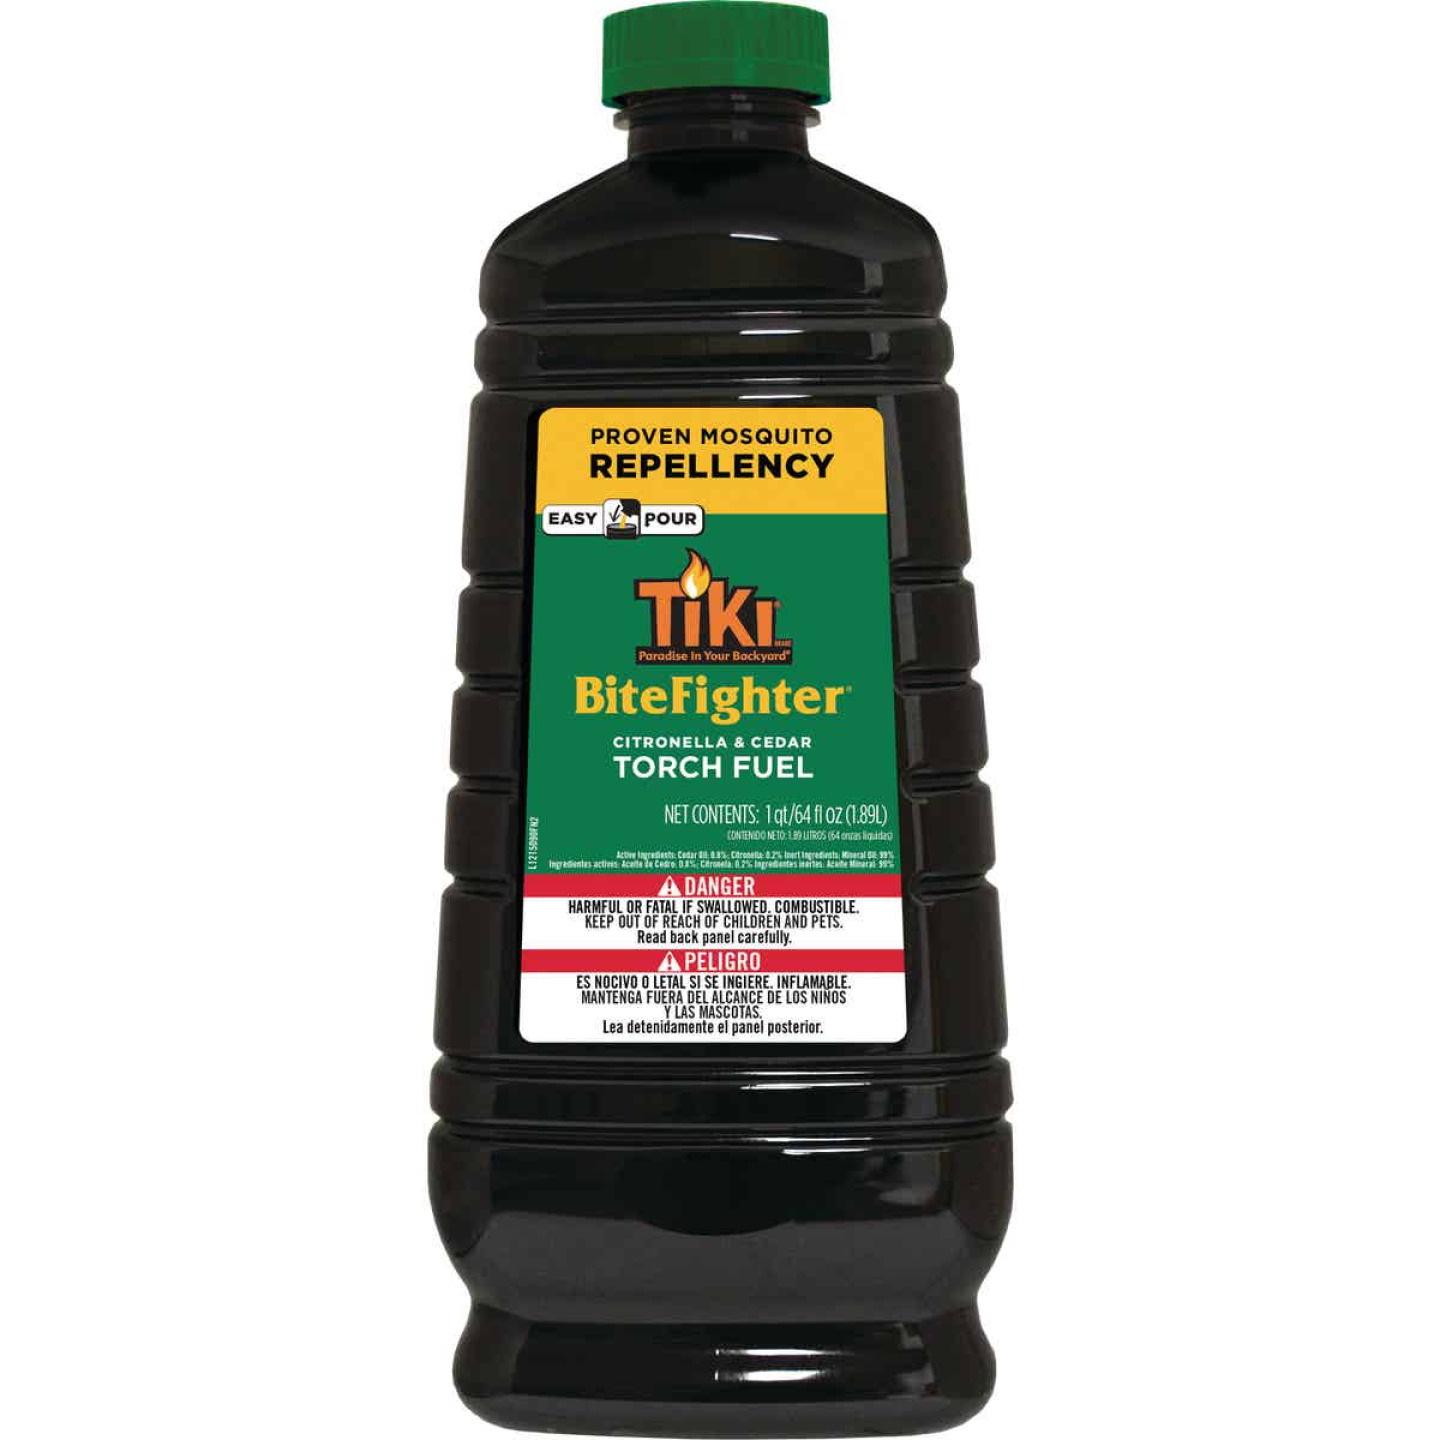 Tiki BiteFighter 64 Oz. Cedar & Citronella Torch Fuel Image 1